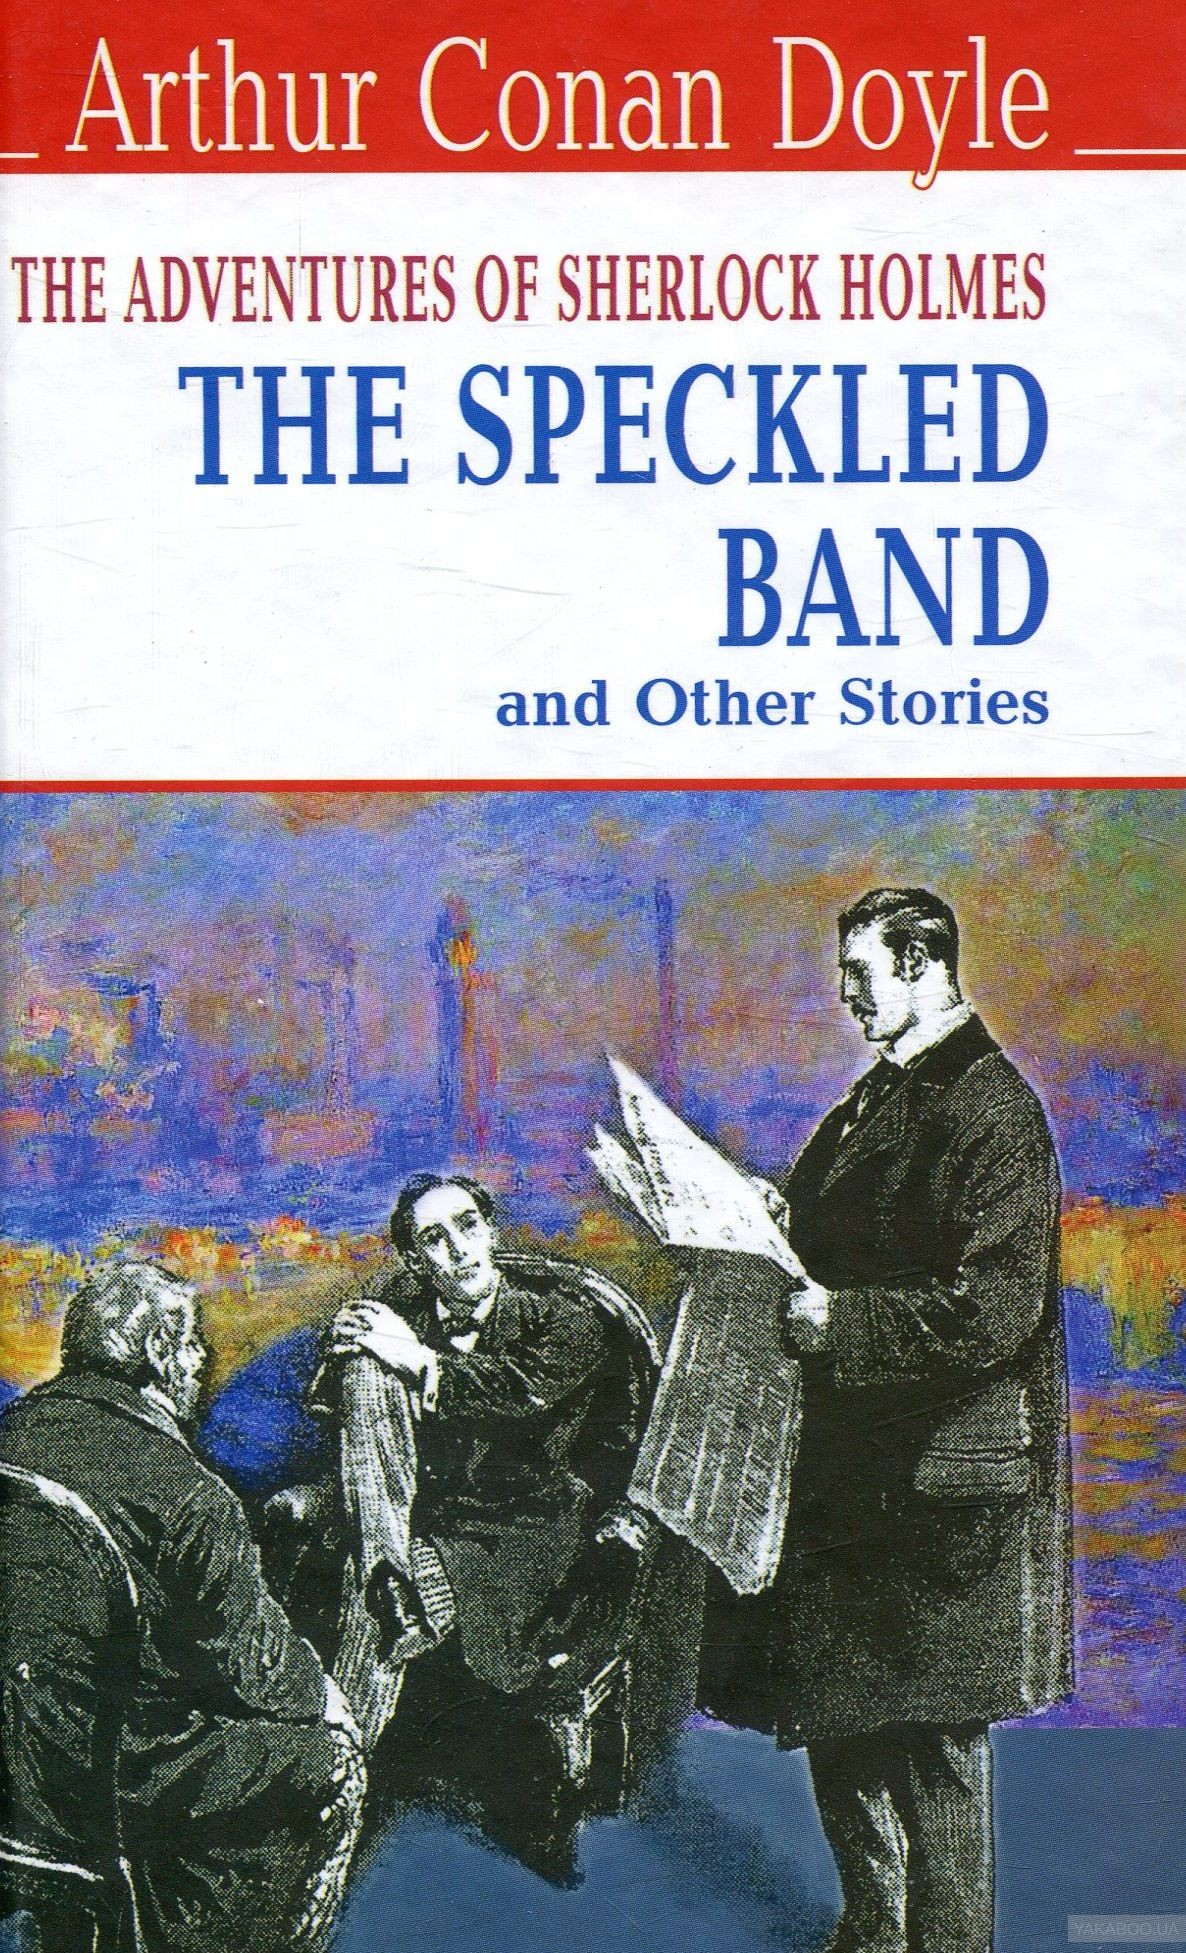 The Speckled Band and Other Stories. The Adventures of Sherlock Holmes